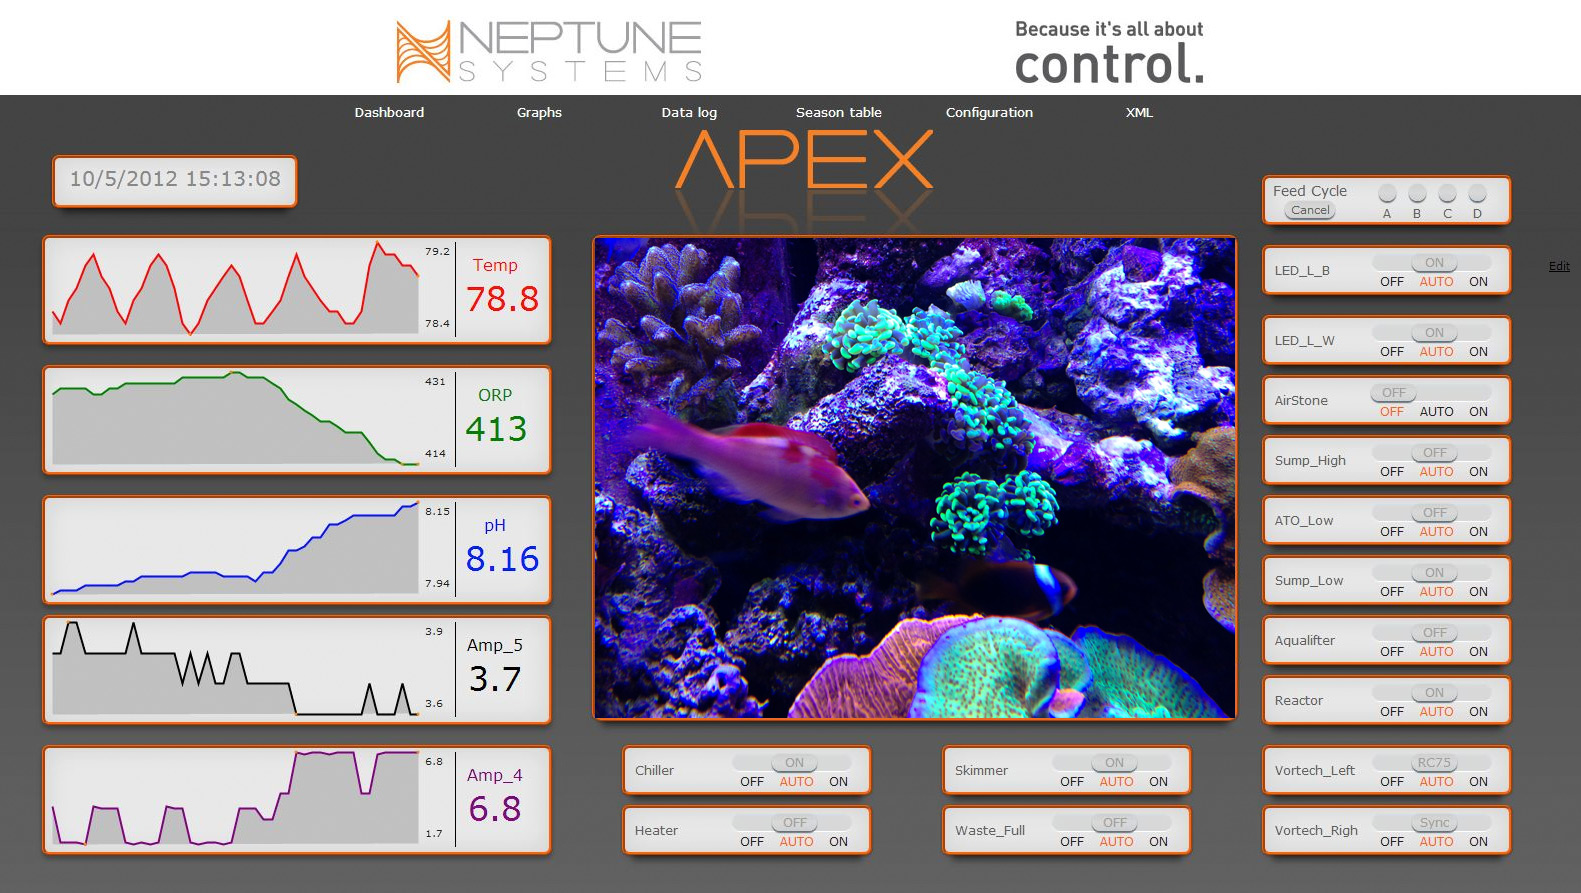 dash1 installing a neptune system's apex controller reefs com Neptune Apex Logo at gsmx.co